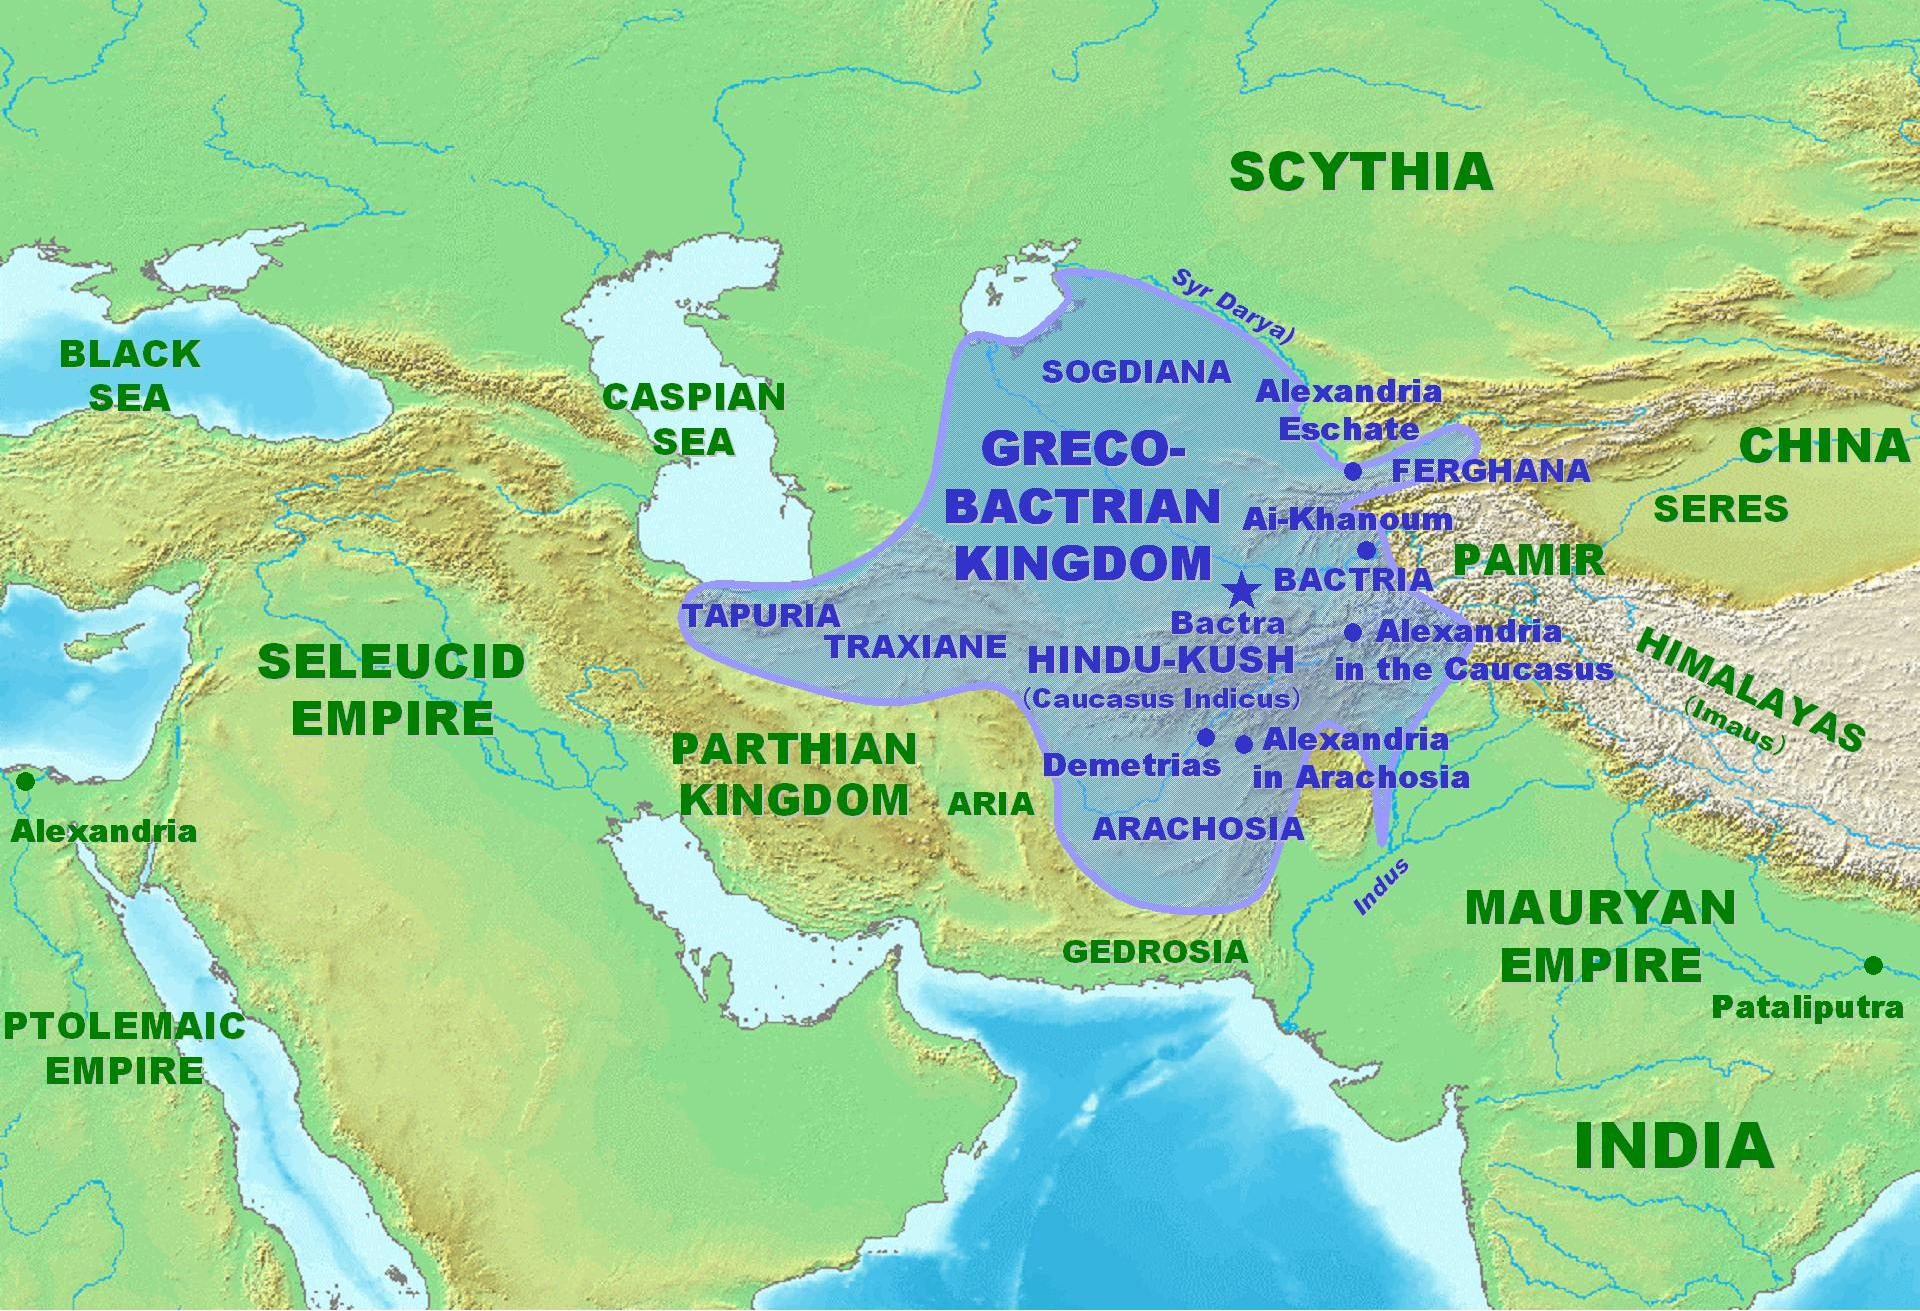 https://upload.wikimedia.org/wikipedia/commons/0/07/Greco-BactrianKingdomMap.jpg